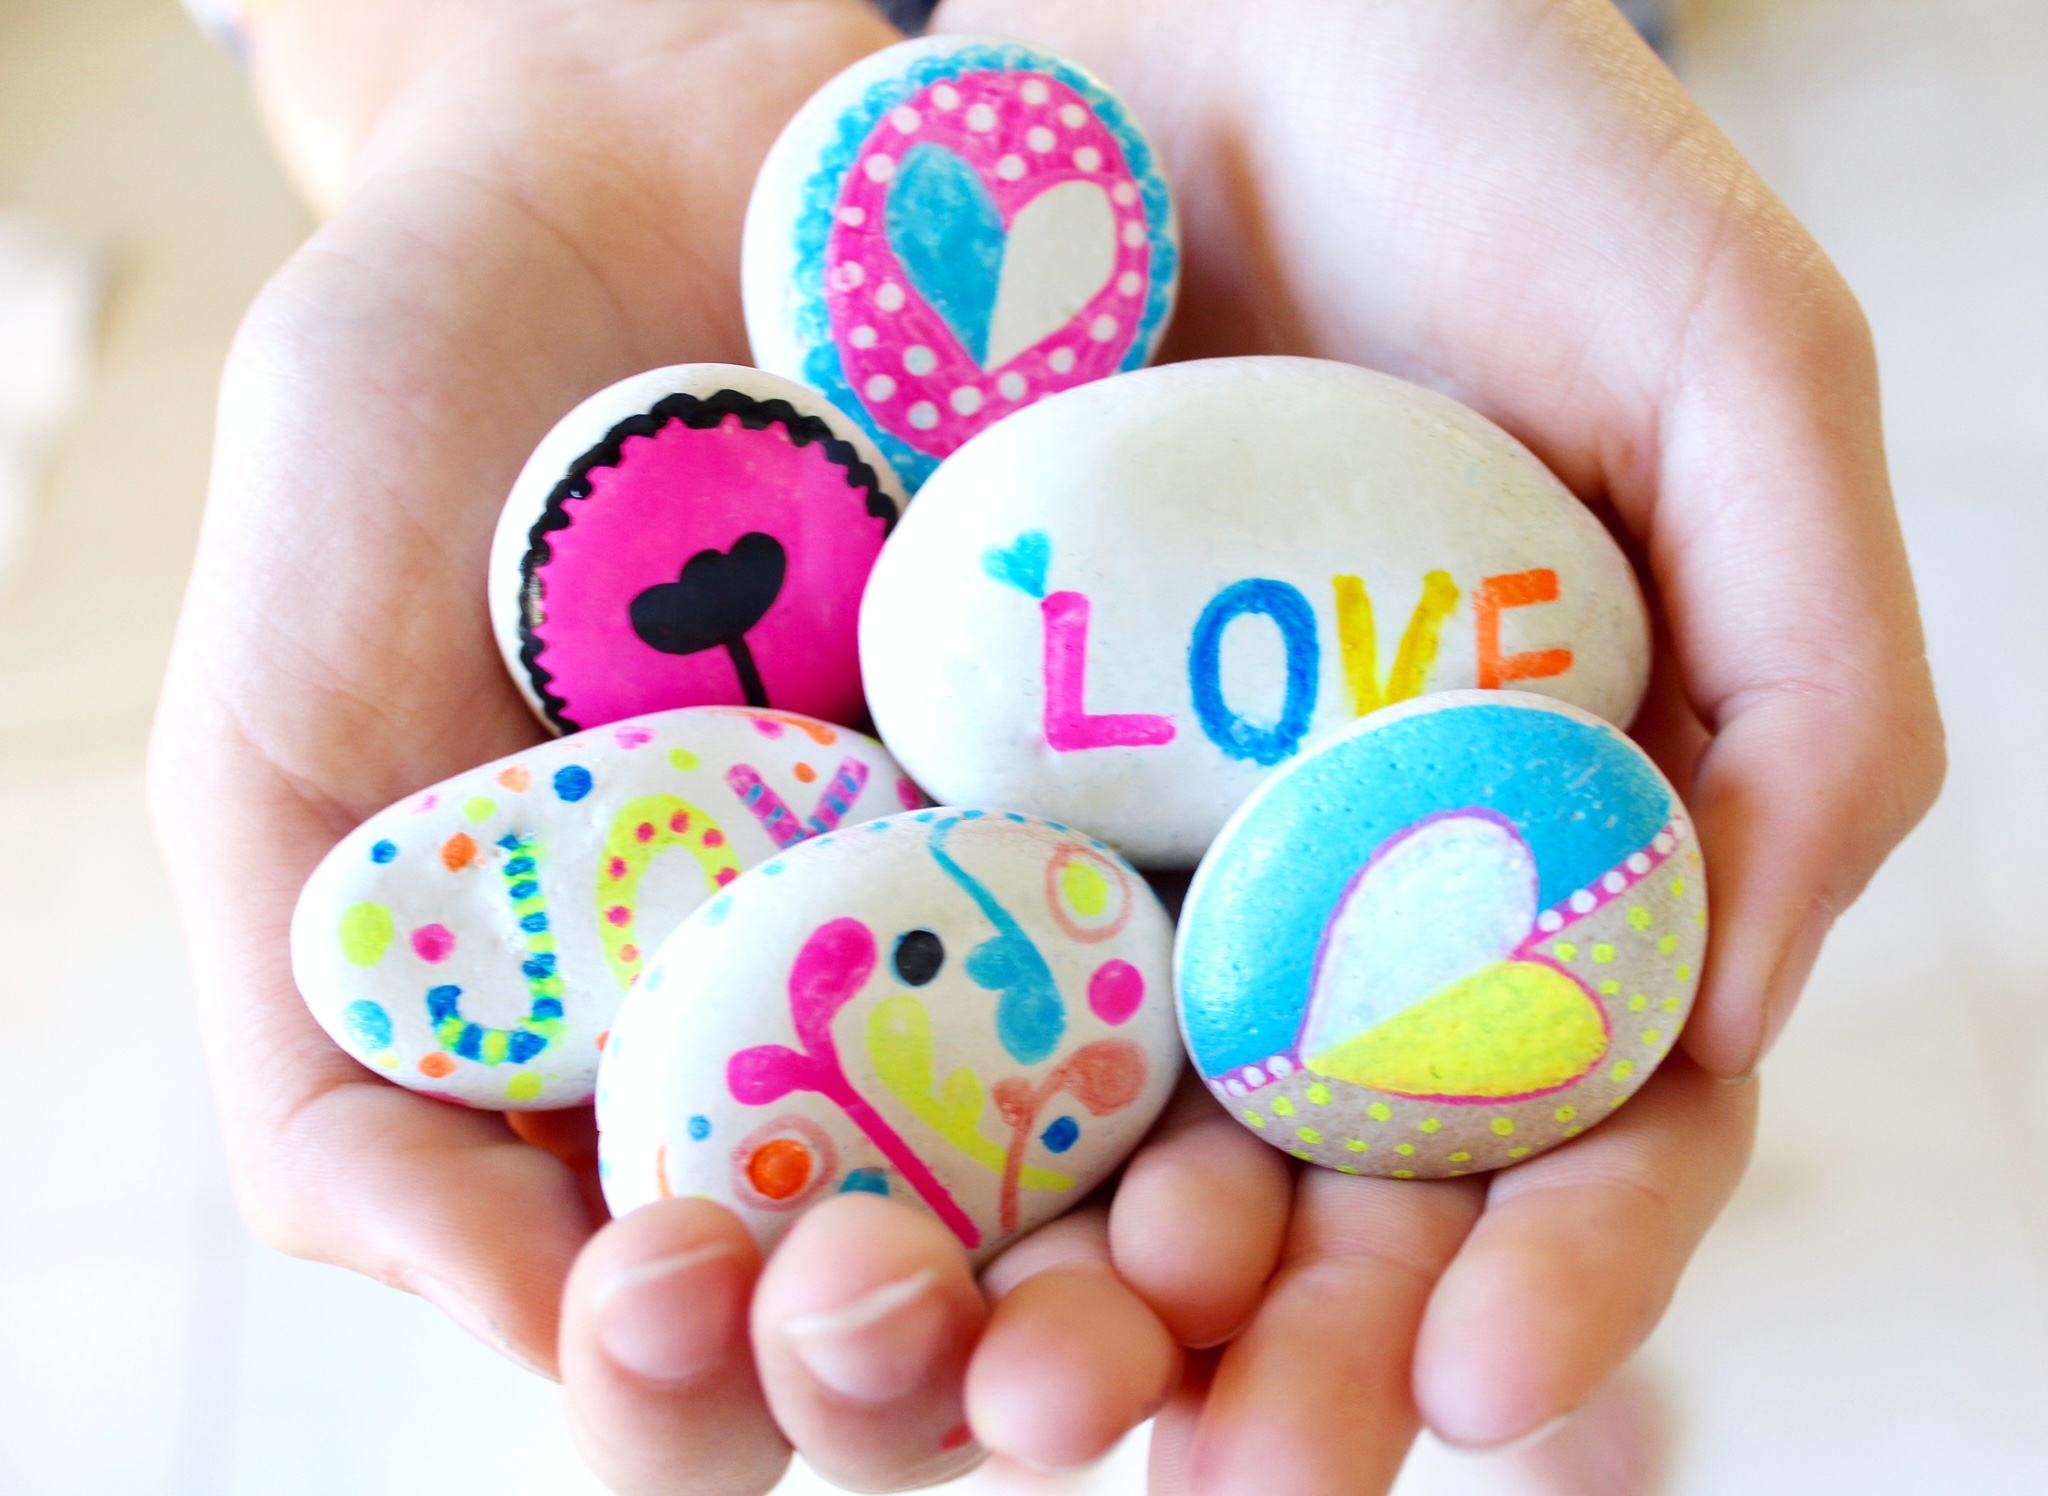 Rock painting ideas for kids Fun painting ideas for toddlers